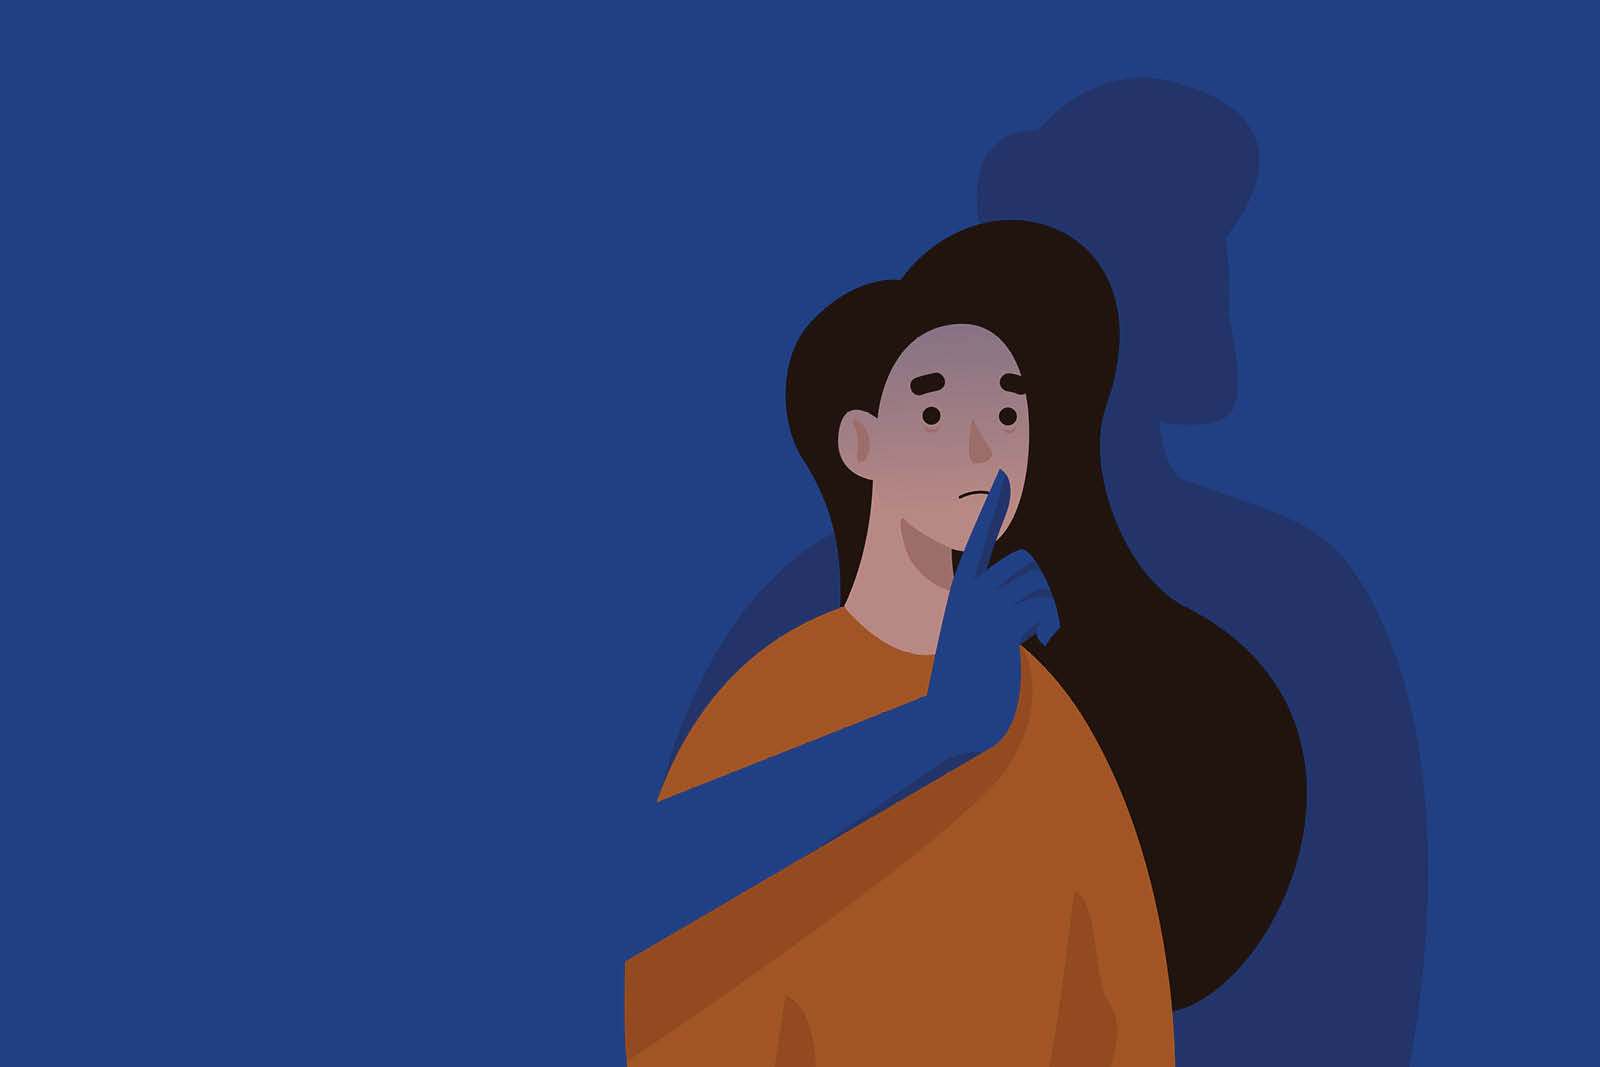 An illustration depicting a woman with a sad expression on her face. A shadowed figure stands behind her with its arm outstretched in front of her, with its index finger extended near her mouth.